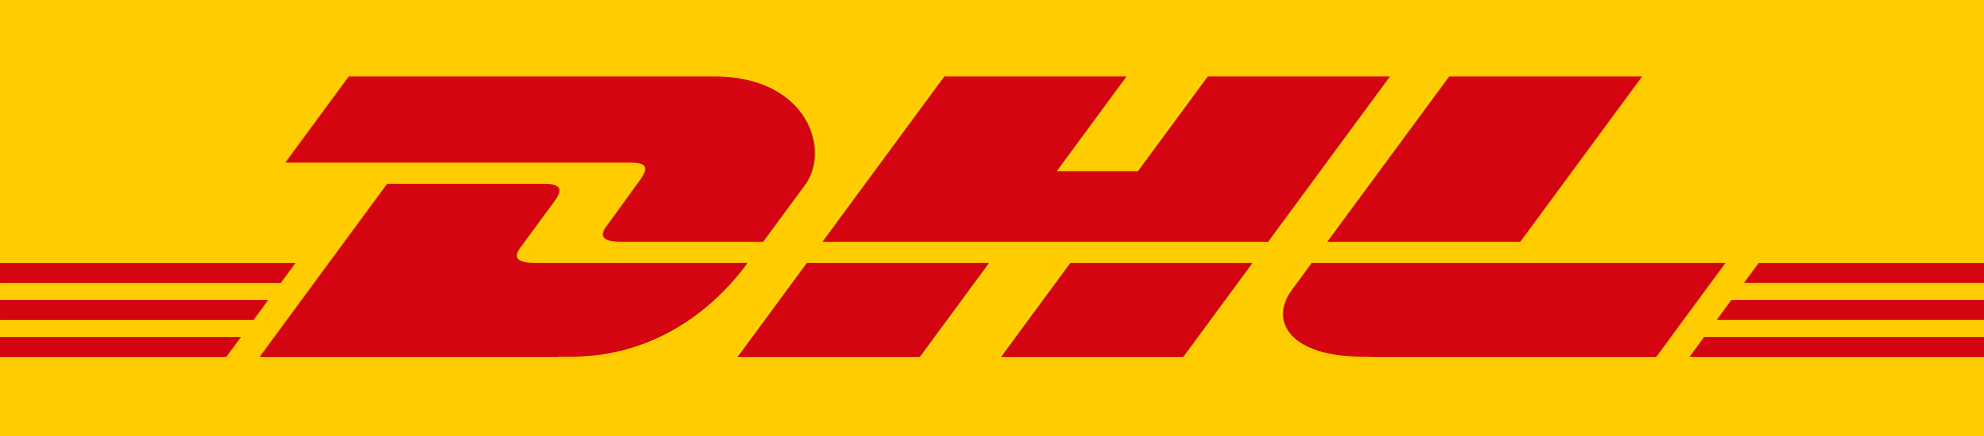 DHL Express (Norway) AS